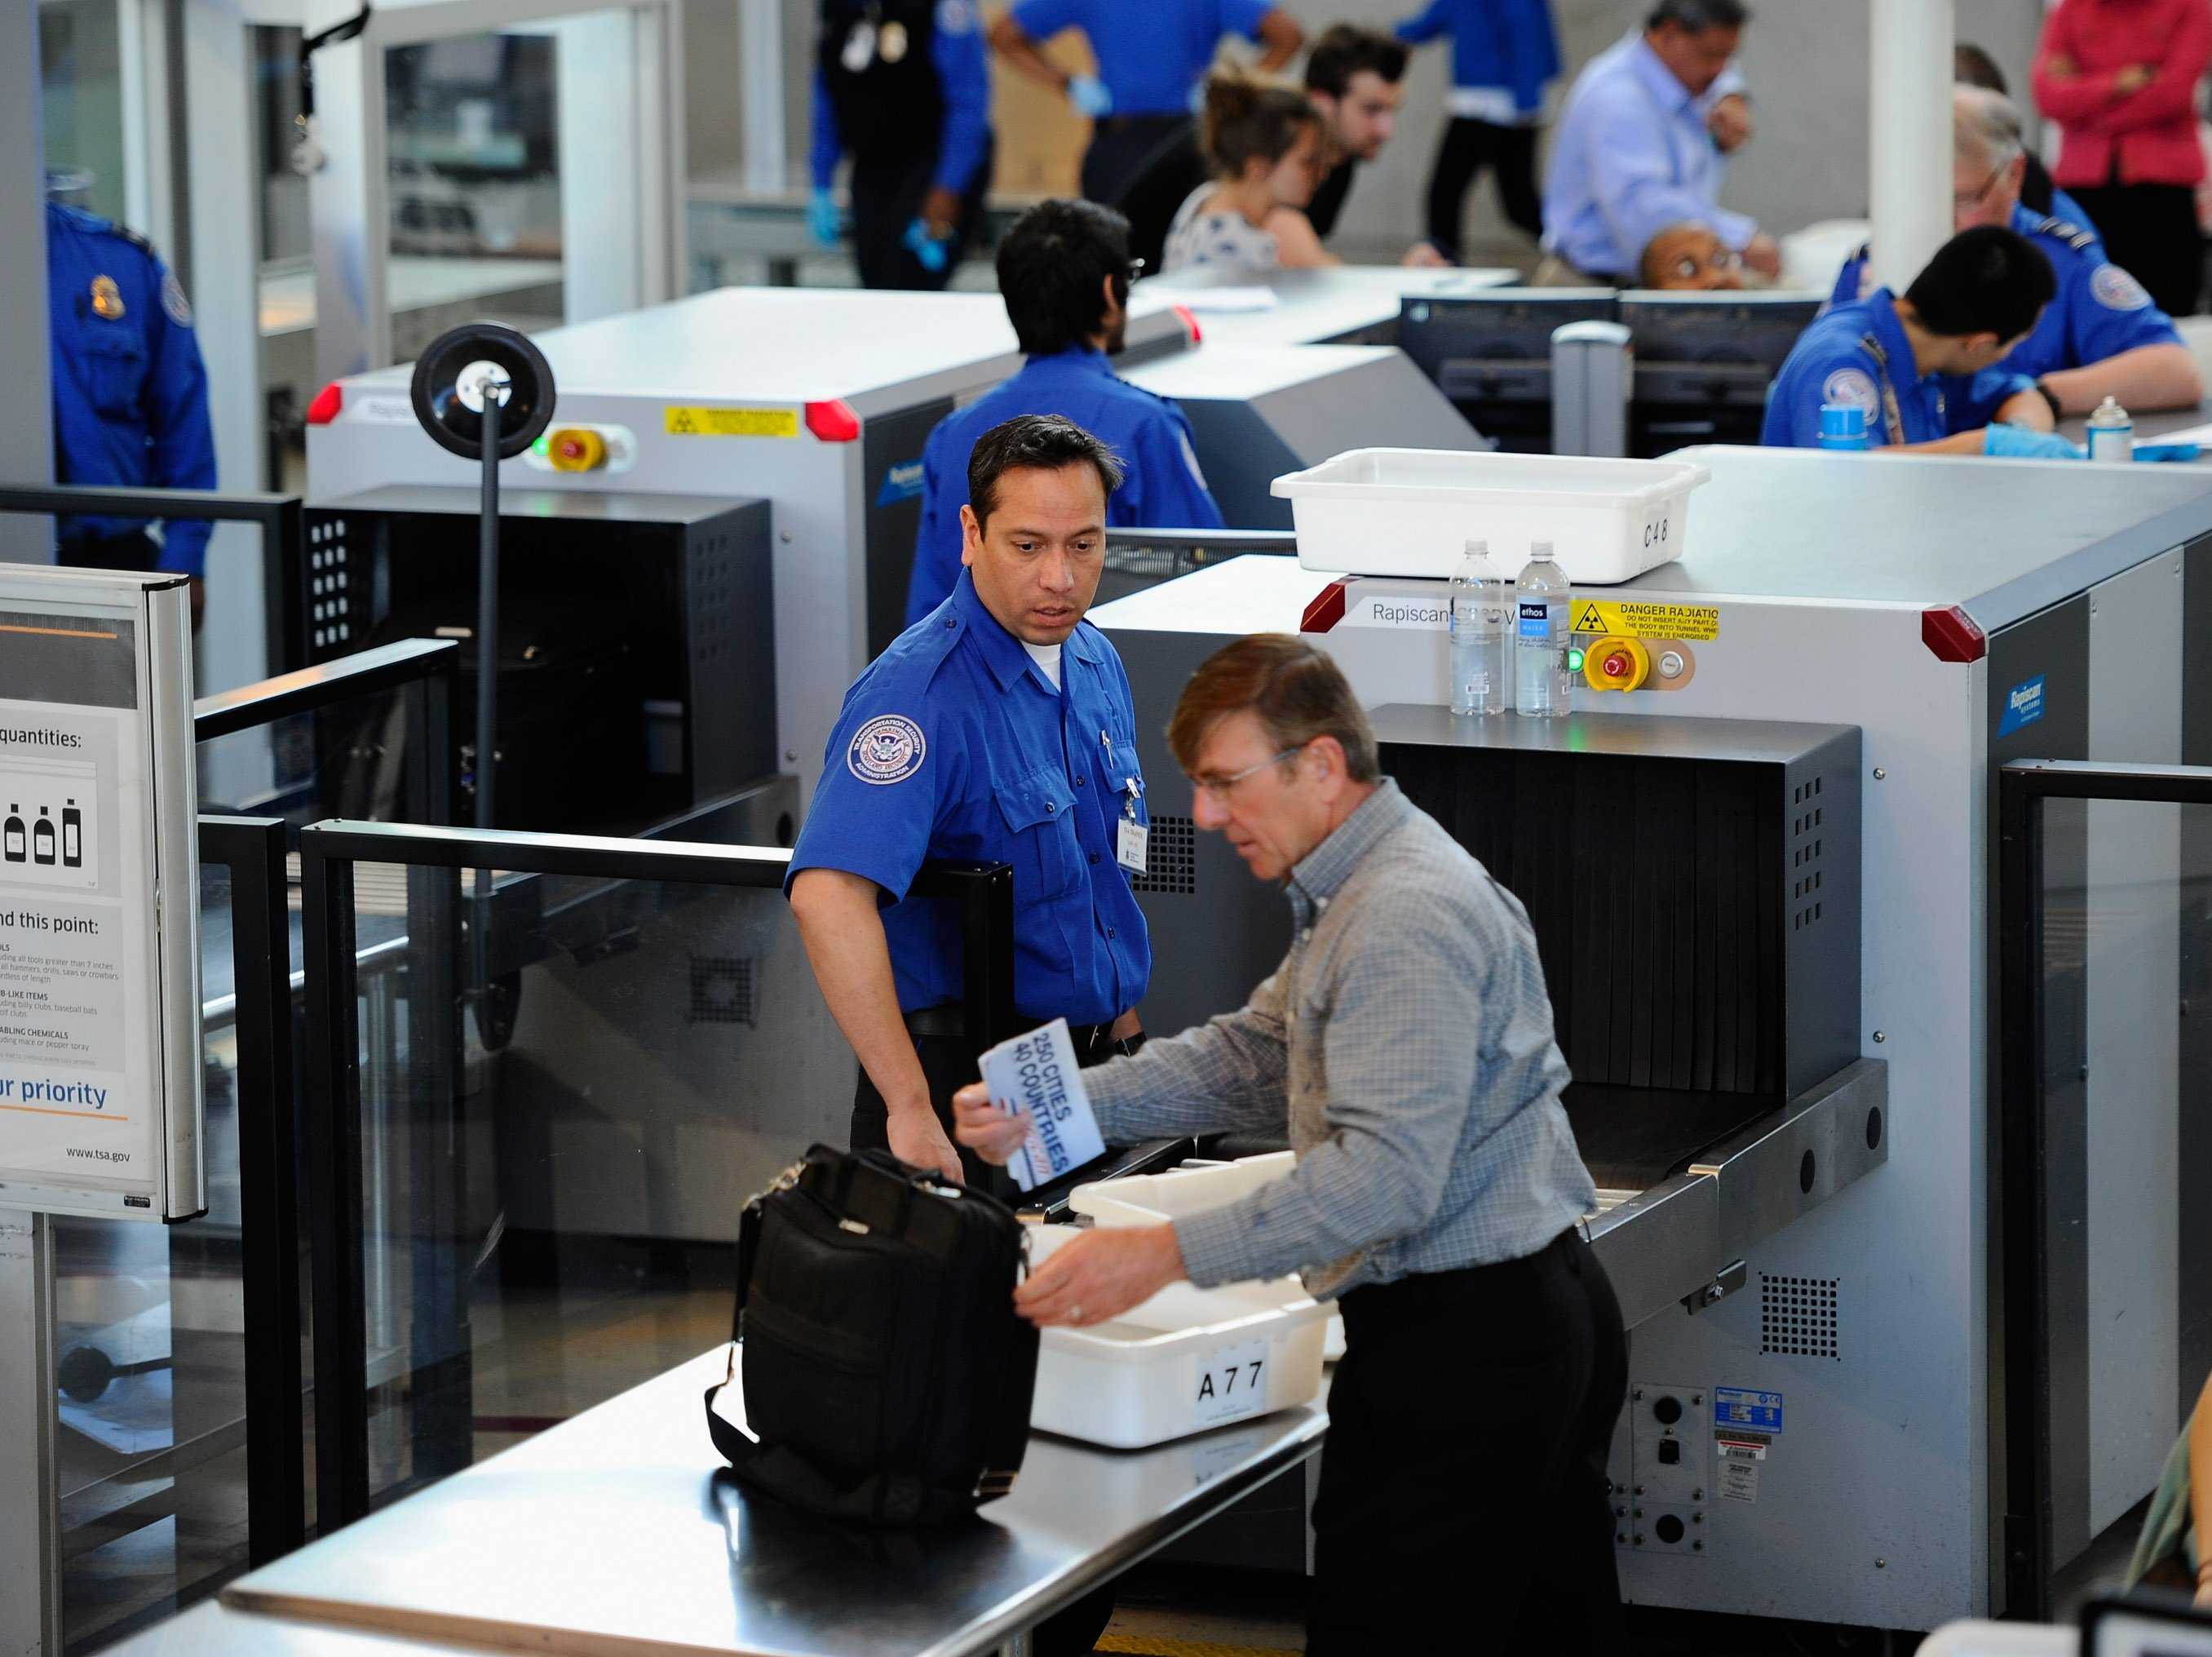 Airport Security Items